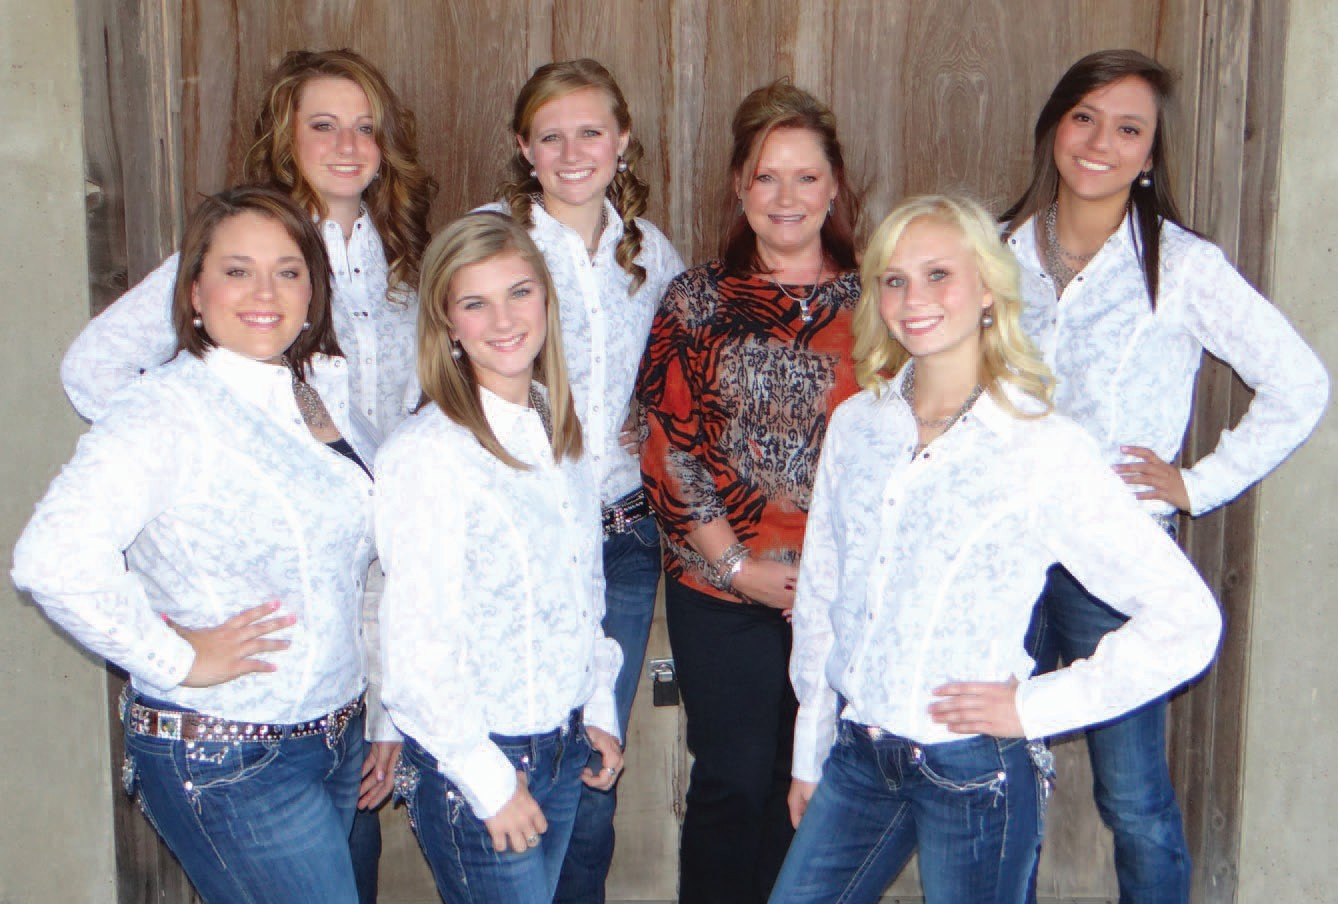 Jill Reed of City Cleaners (center) has donated dry cleaning for the Cowboy Homecoming Court . Gathered around her are back row, left to right: Princess Emalee Rice, Princess Jessica Herschap, Reed and Princess Danielle Santos. Front row, left to right are Duchess Kylie Yapp, Queen Kianne Rowinsky and Princess Lexie Roane.